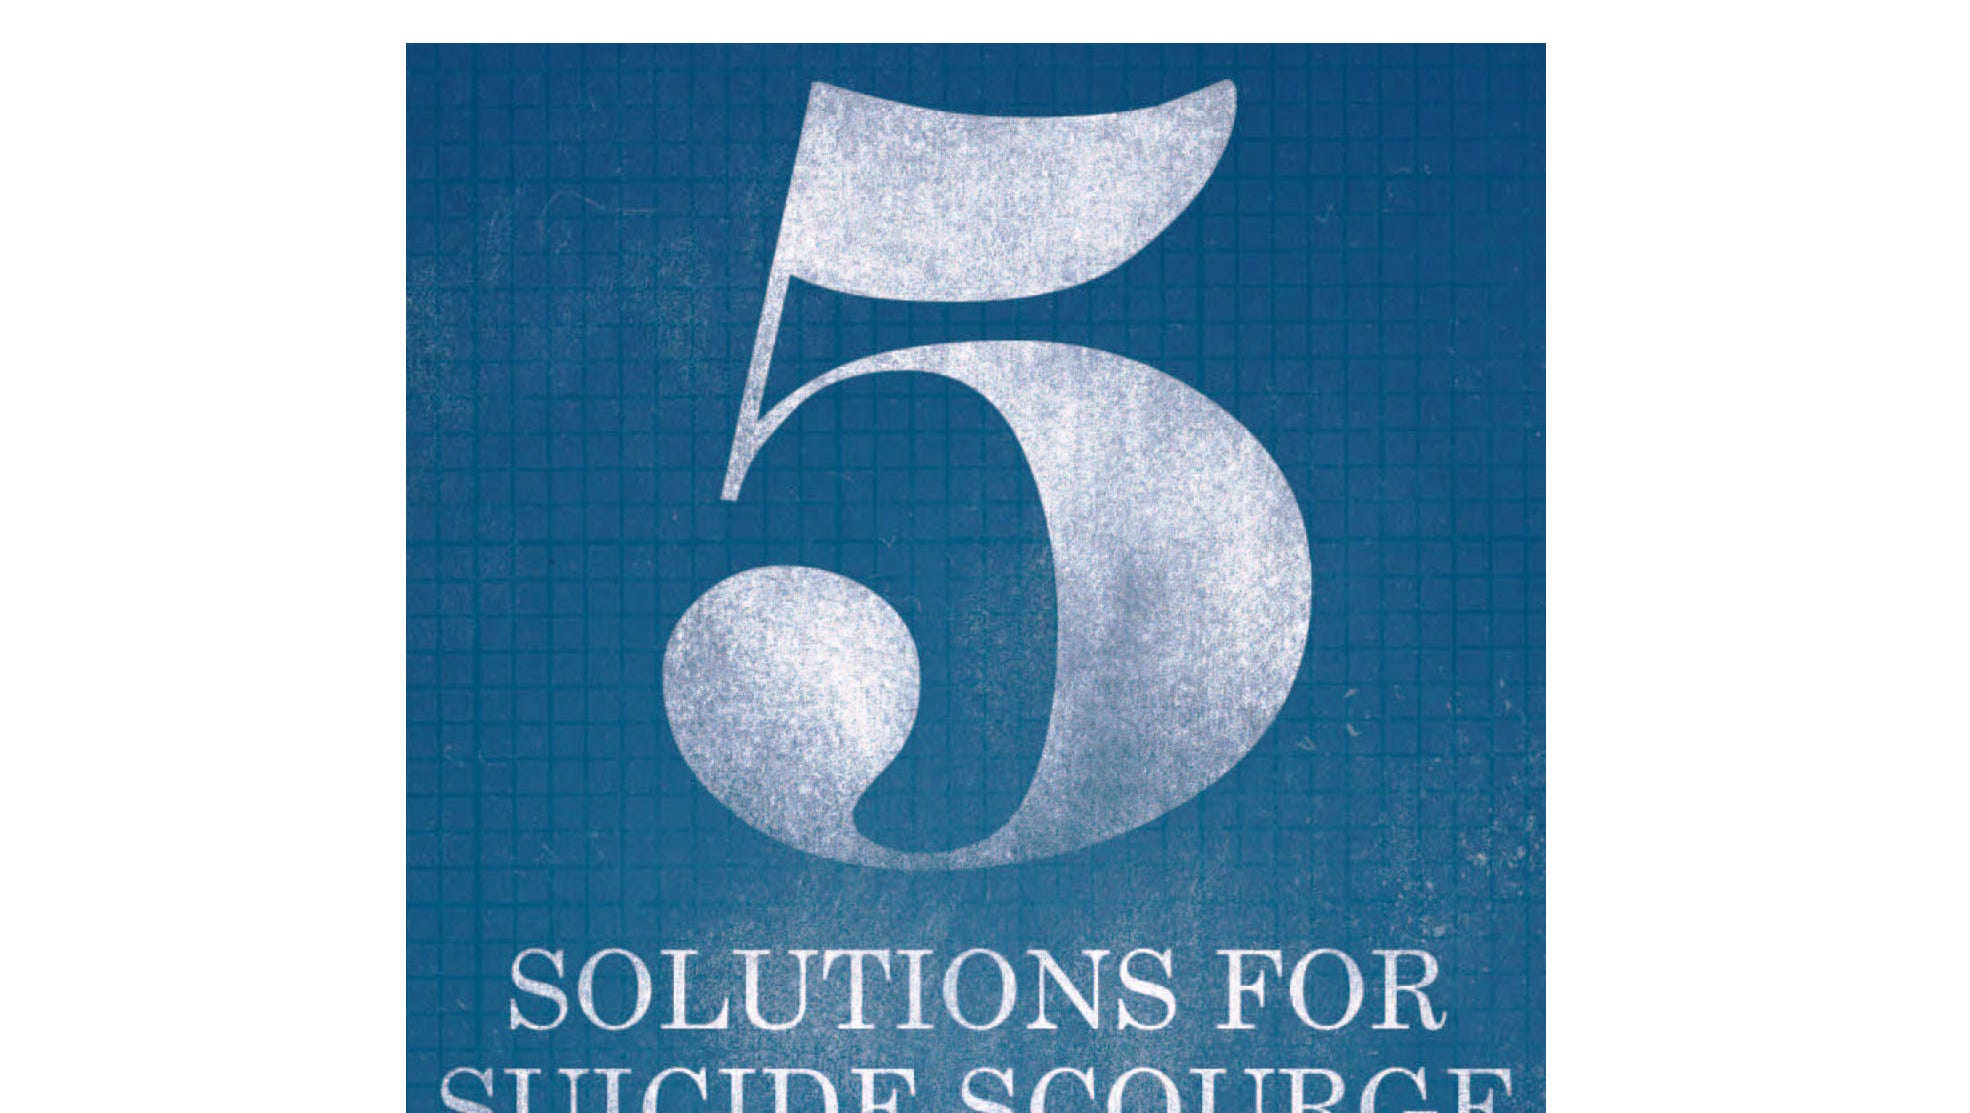 Chapter Three: 5 solutions for teen suicide scourge